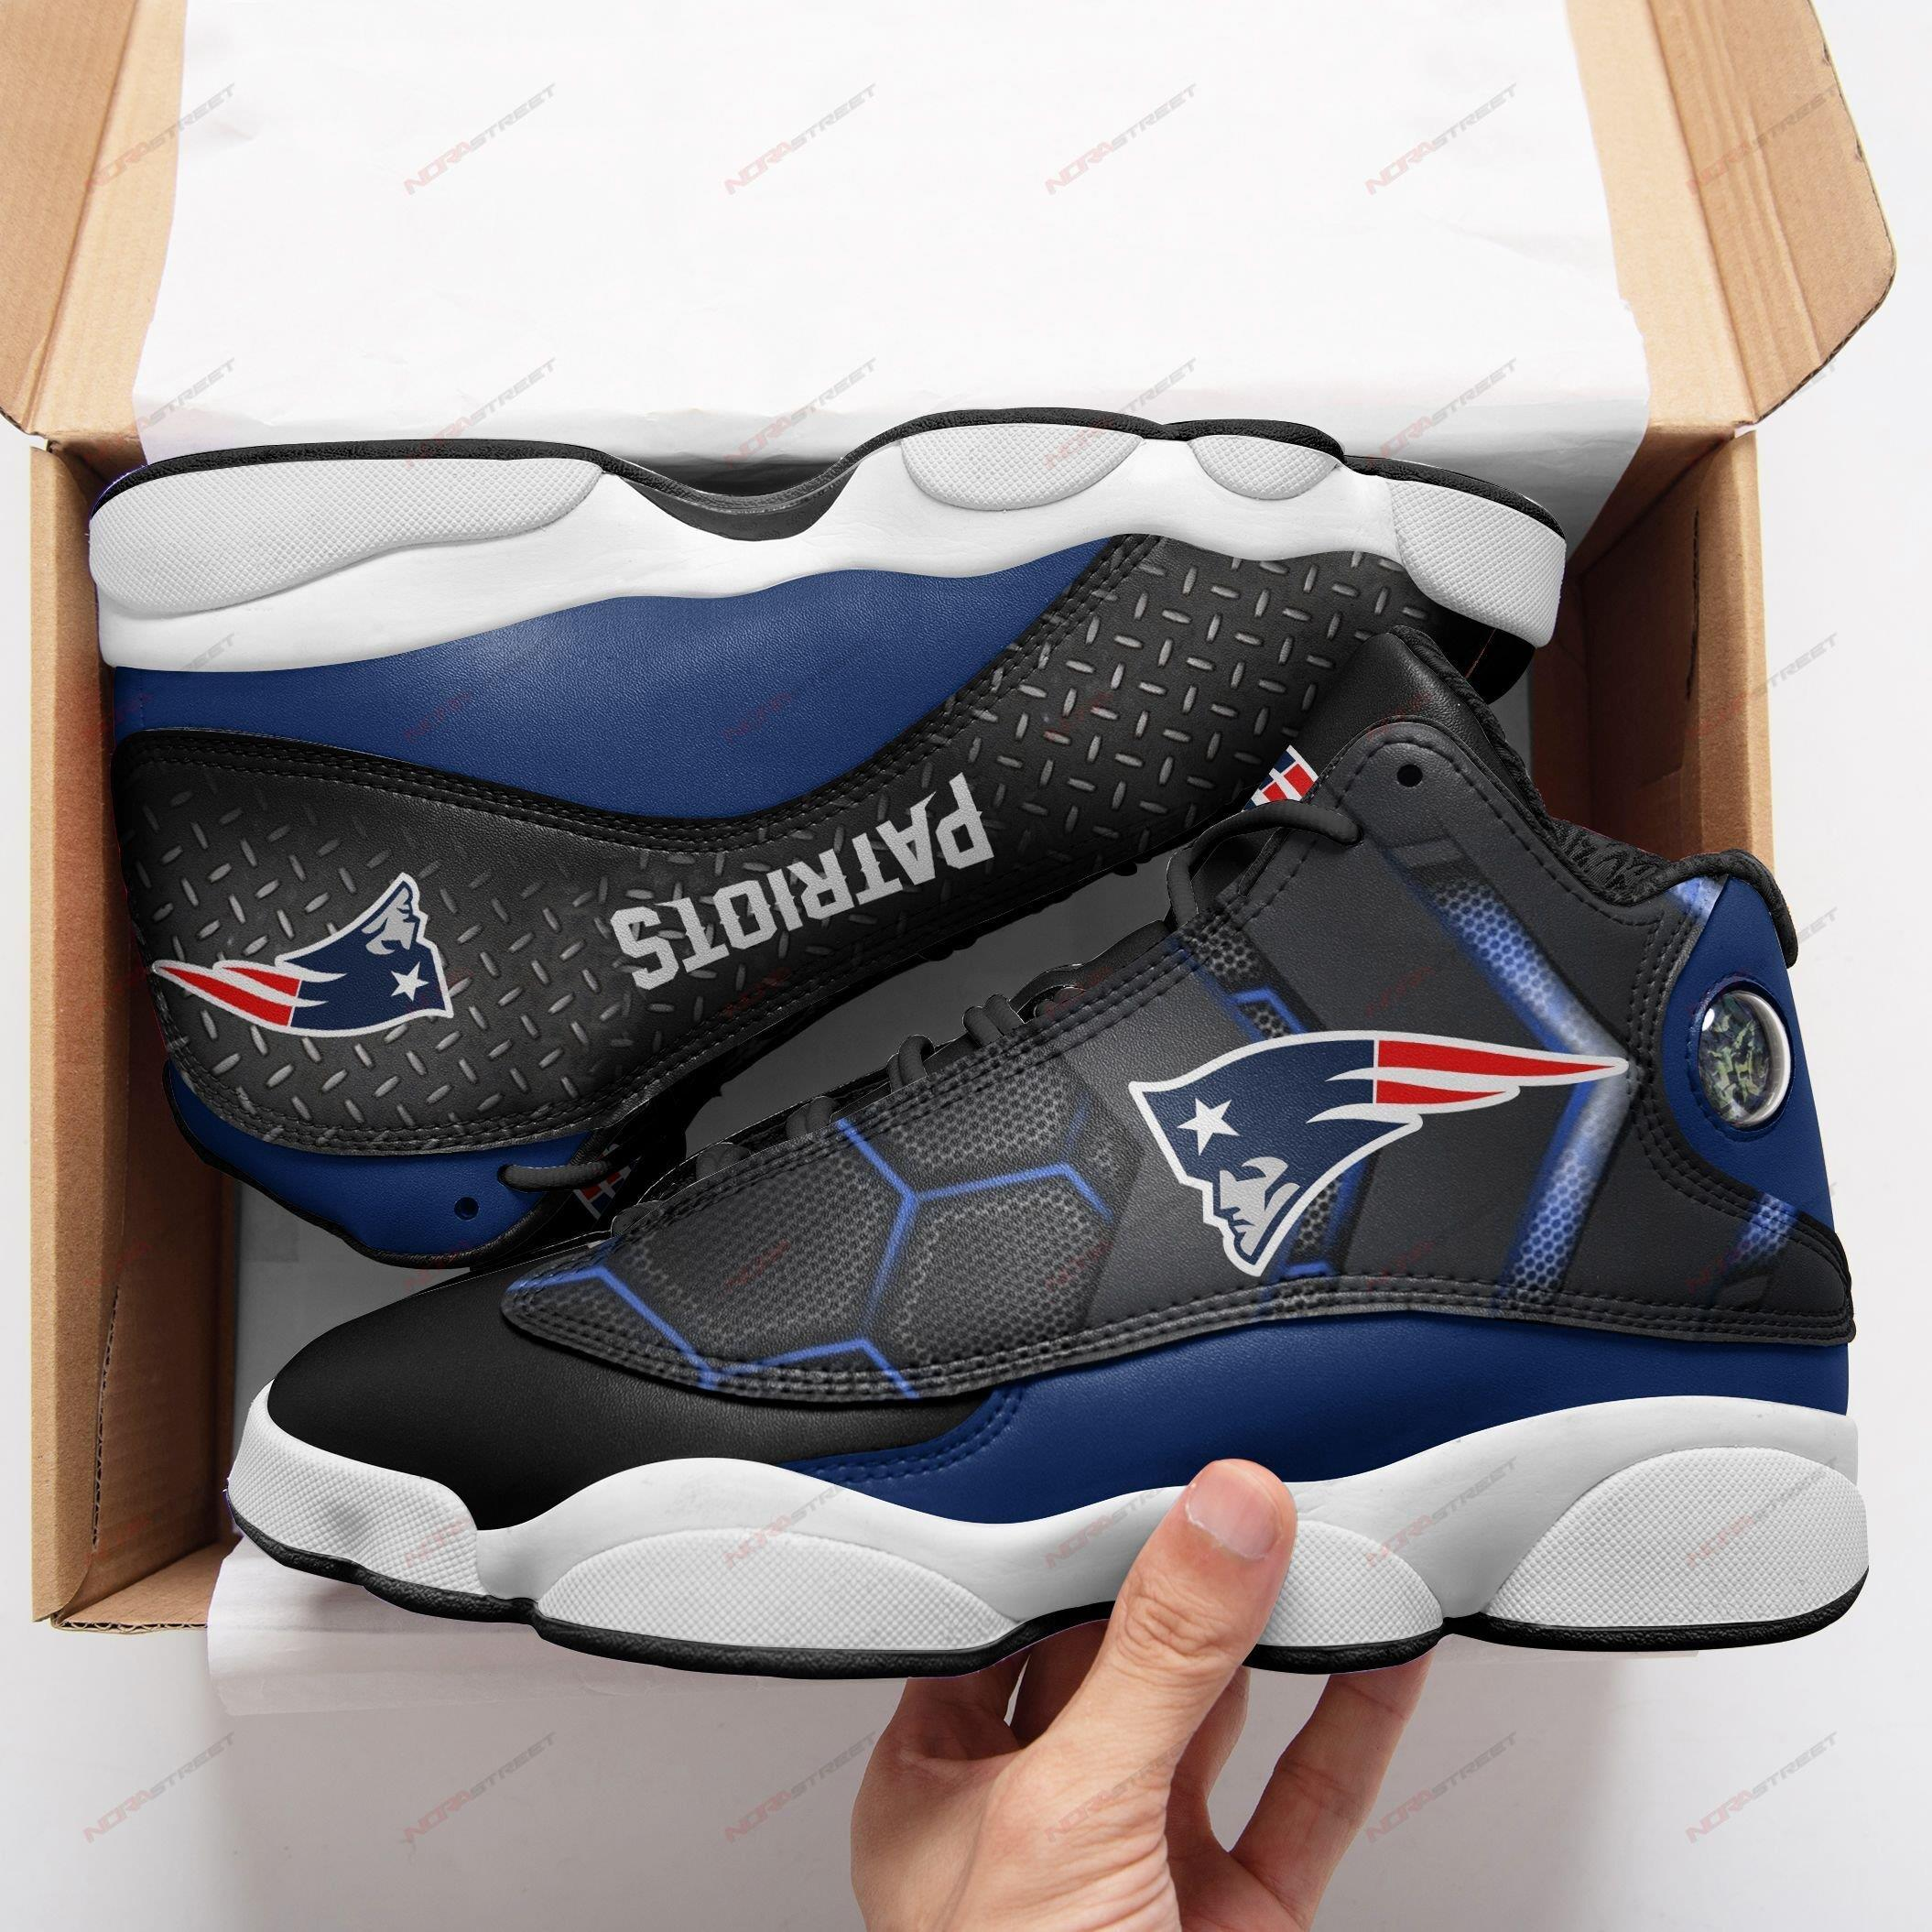 New England Patriots Air Jordan 13 Sneakers Sport Shoes Plus Size